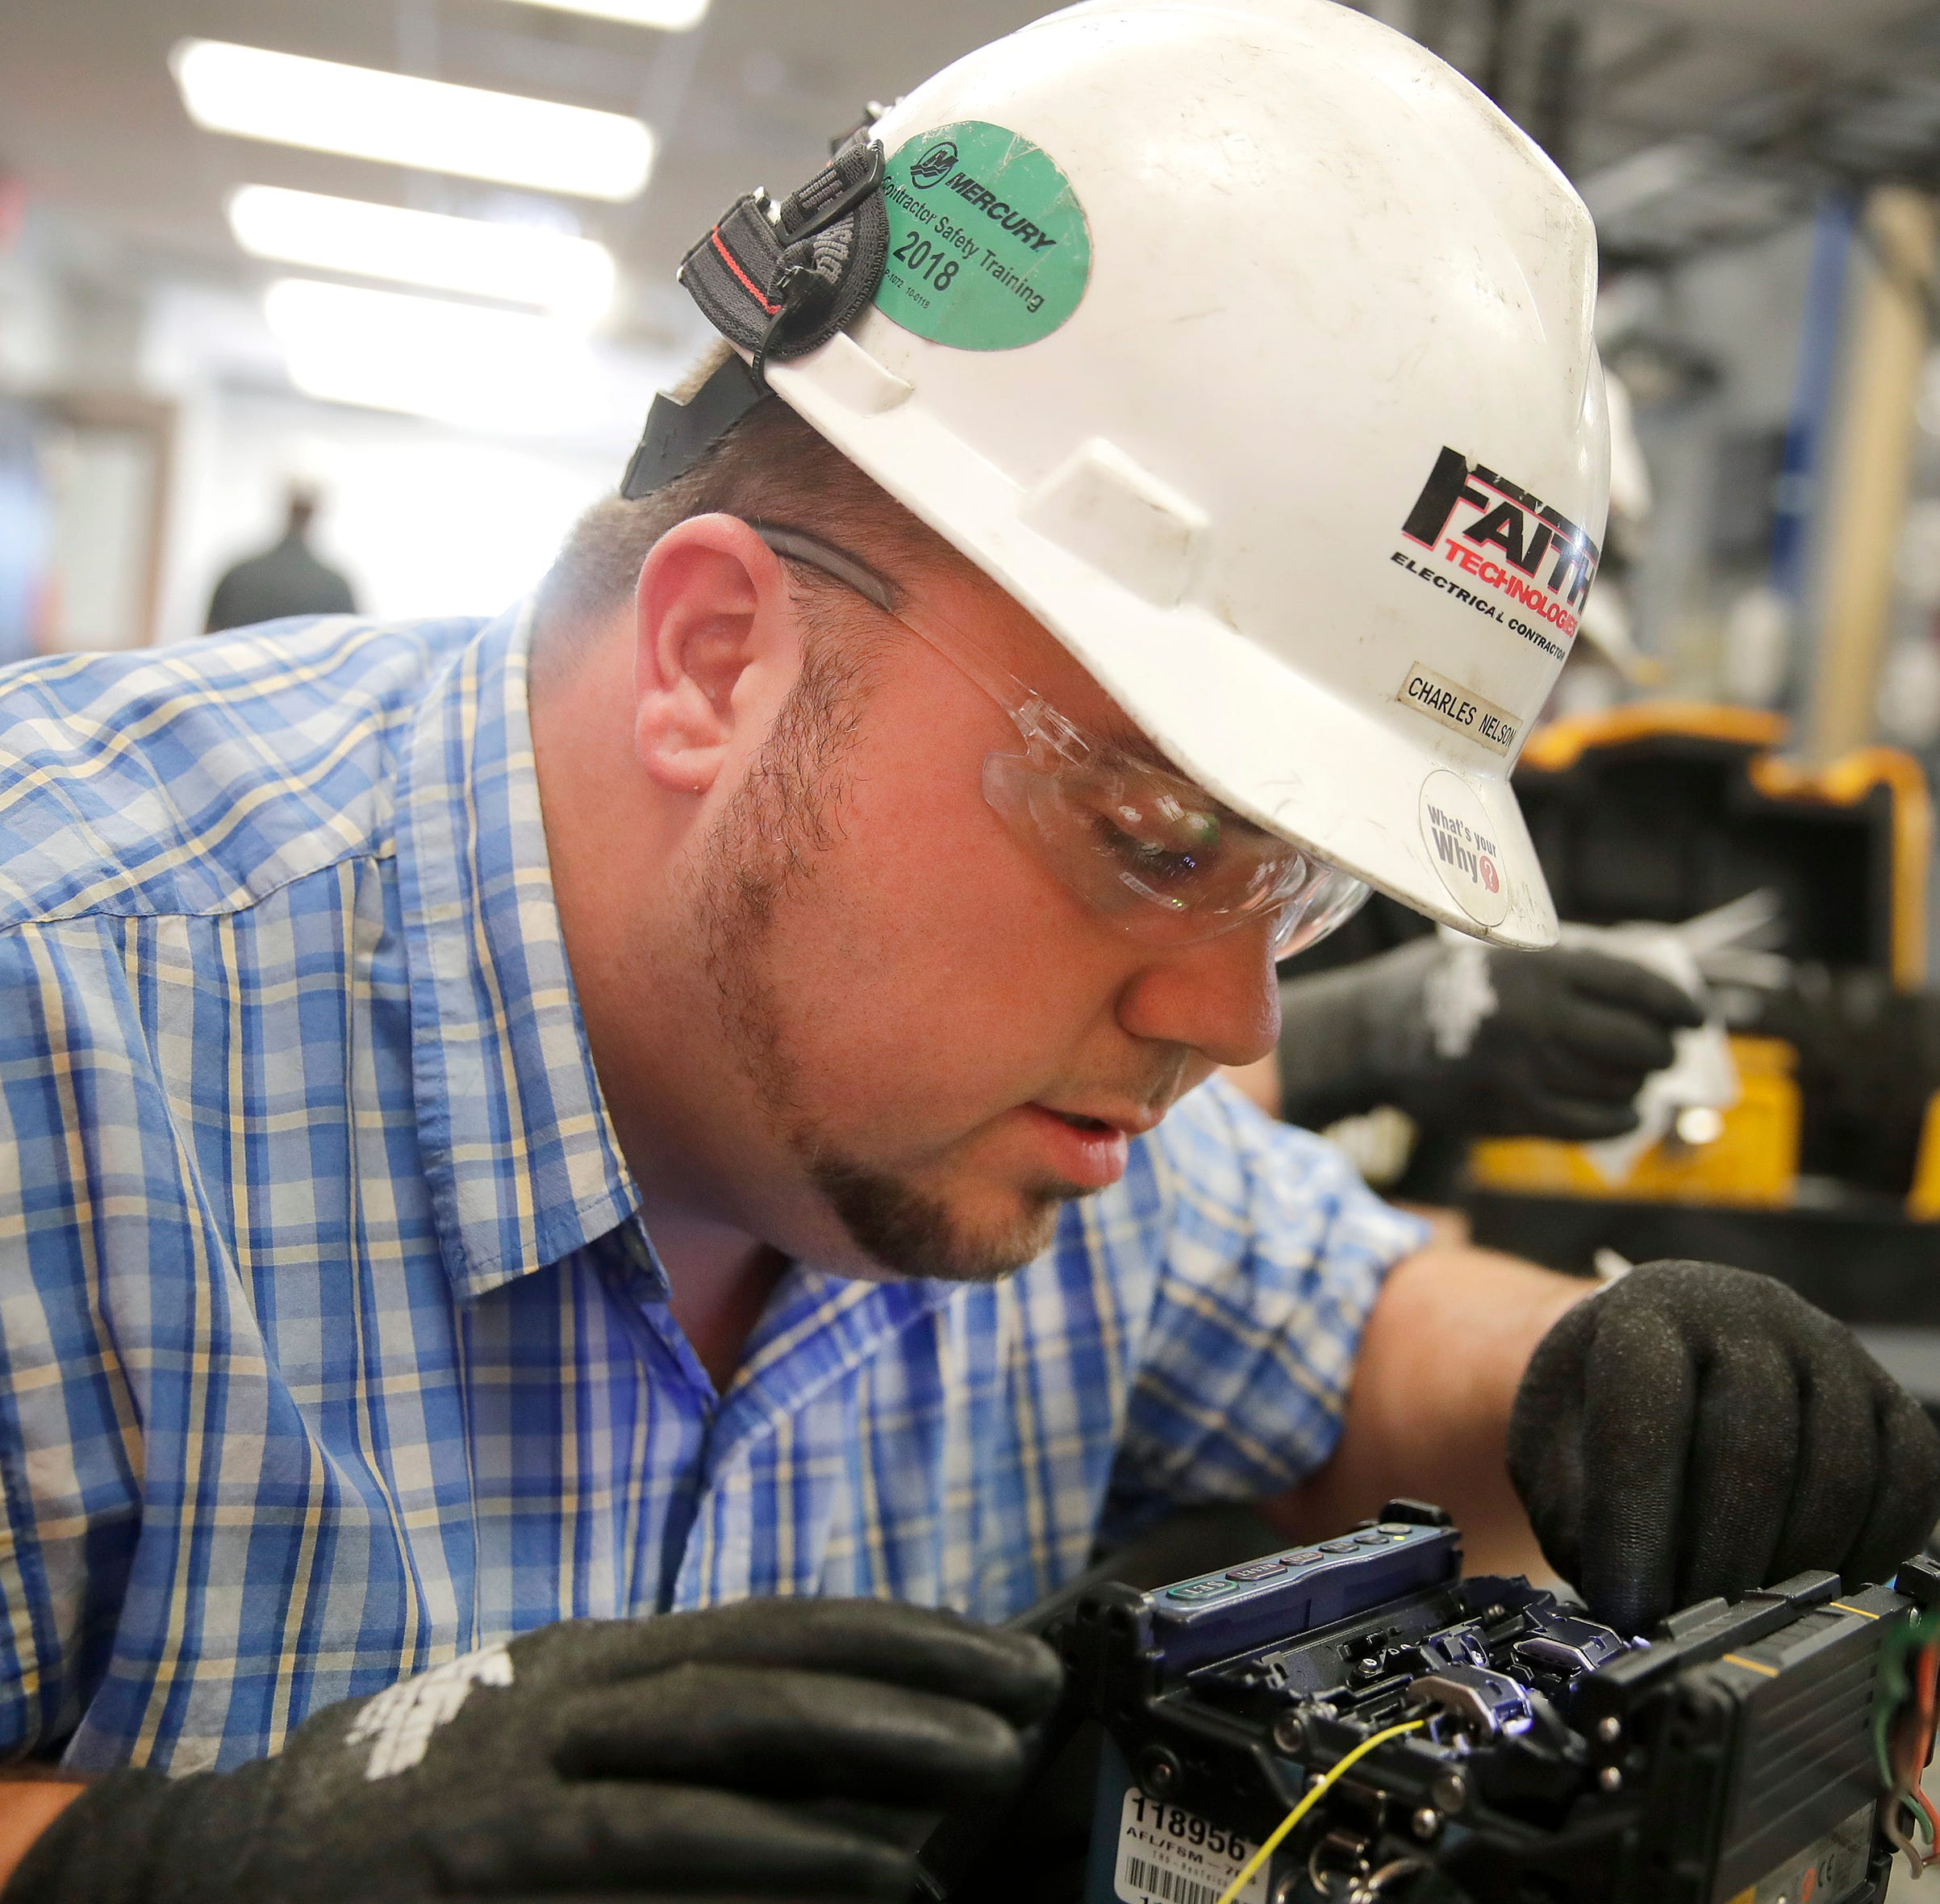 Apprenticeship: At Faith Technologies, Manitowoc man gets hands-on learning while working